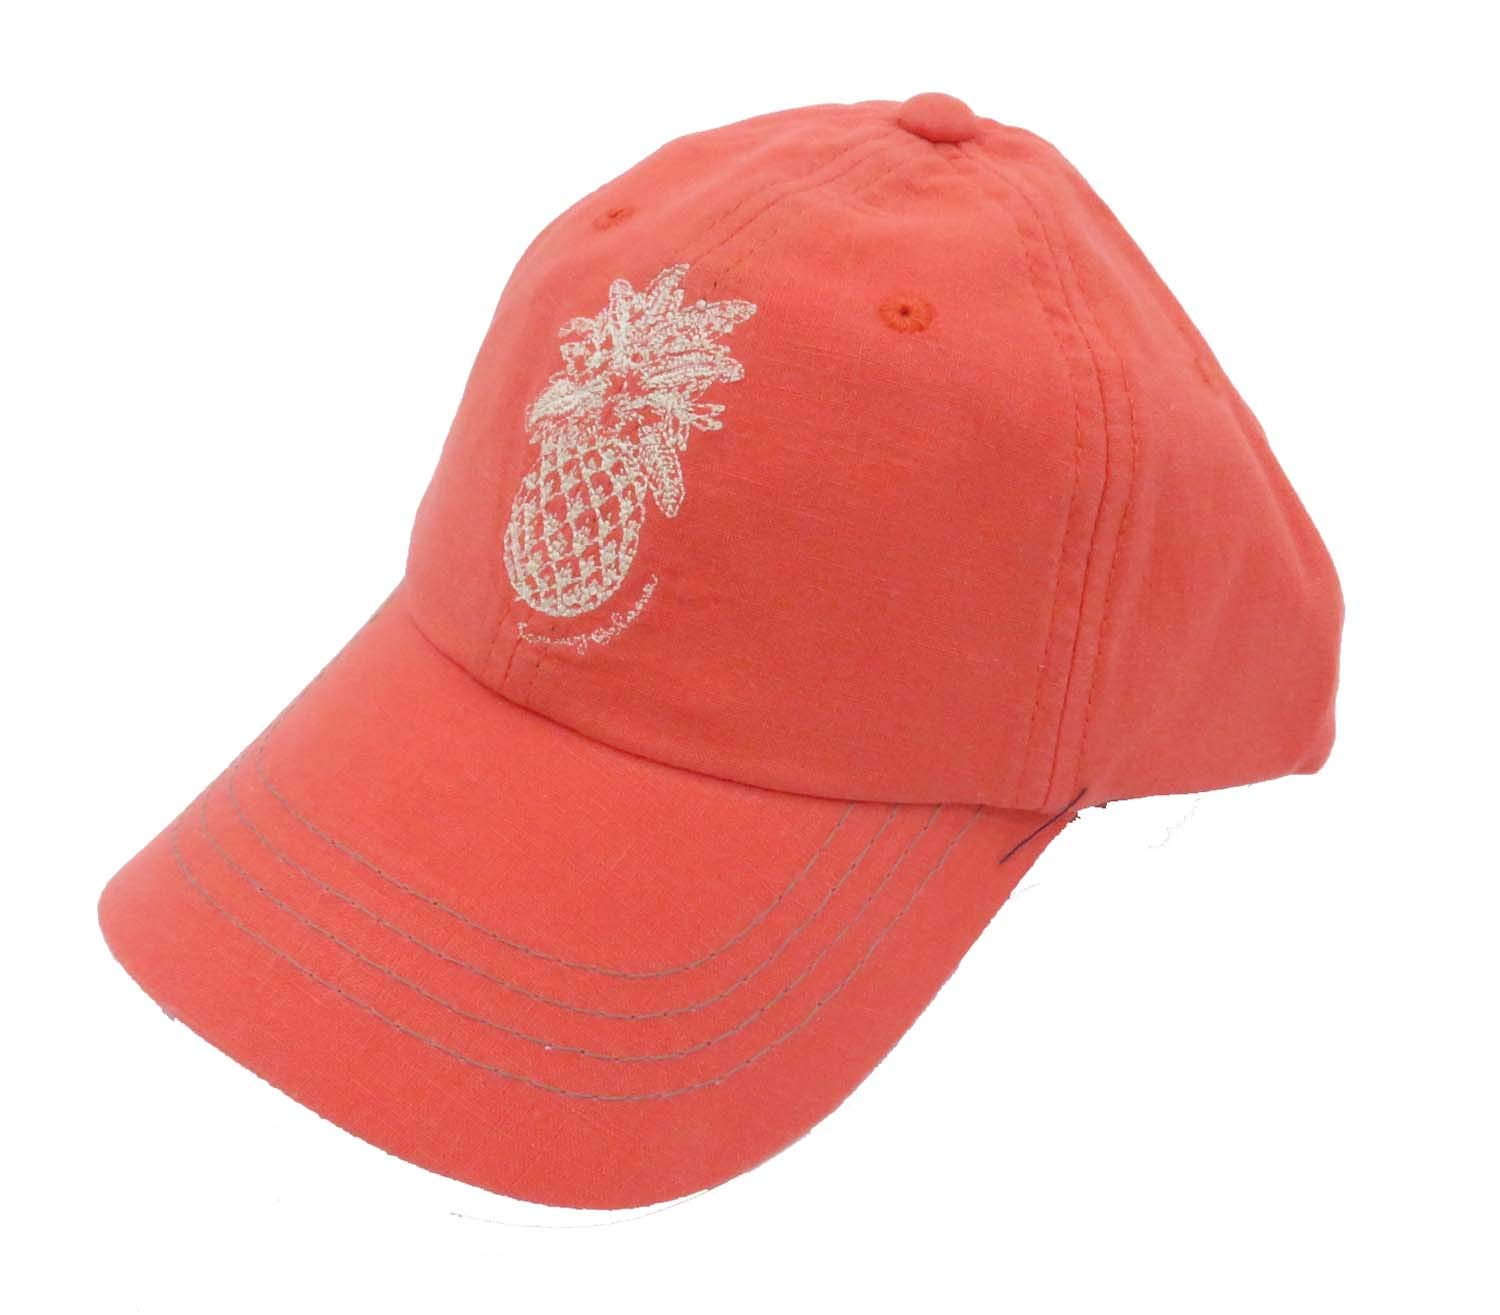 Tommy Bahama Men's Pineapple Orange Linen Blend Cap by Tommy Bahama (Image #1)